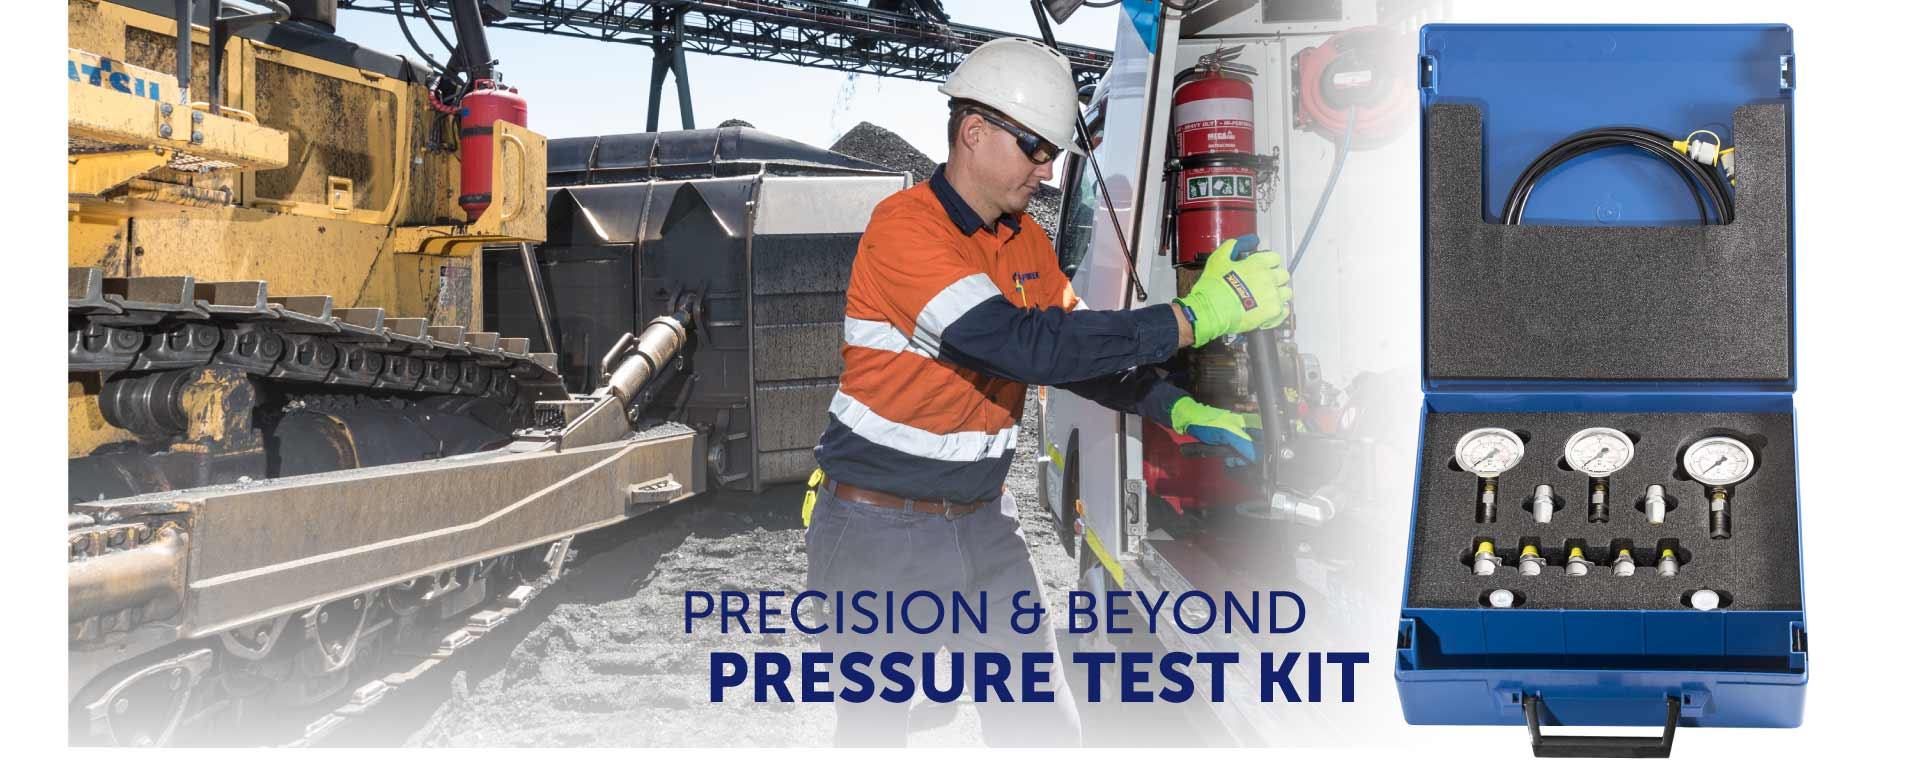 NEW_Pirtek-Pressure-Test-Kit_SAFE-B